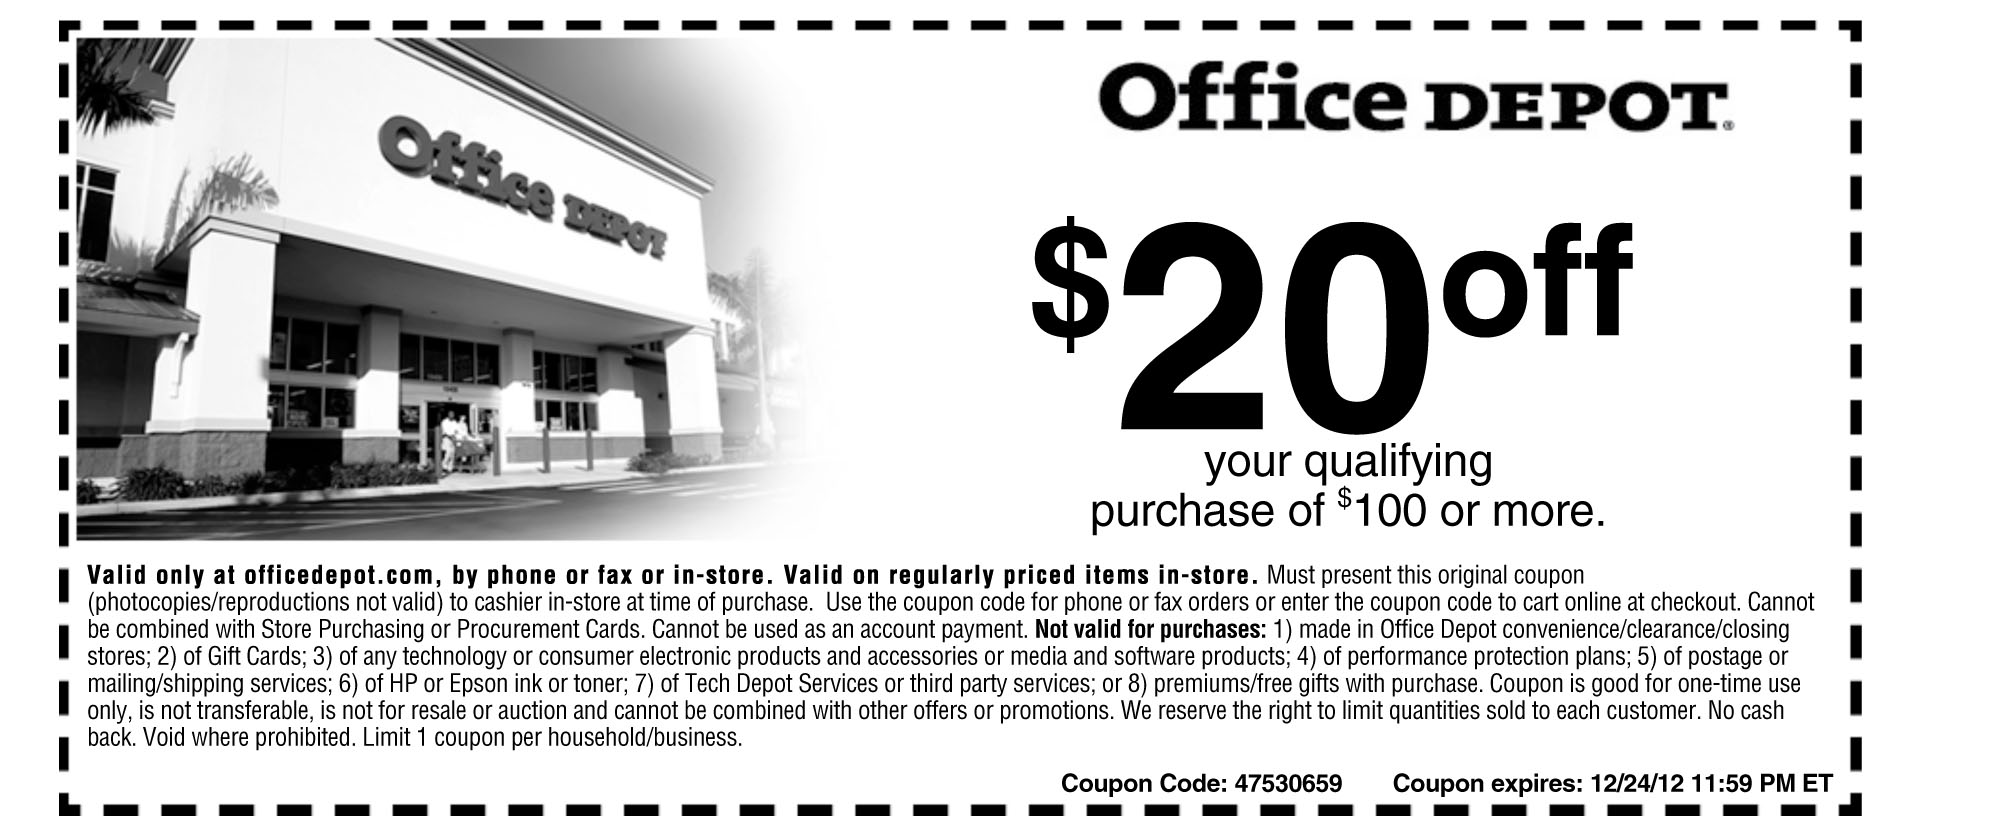 Find office depot coupons